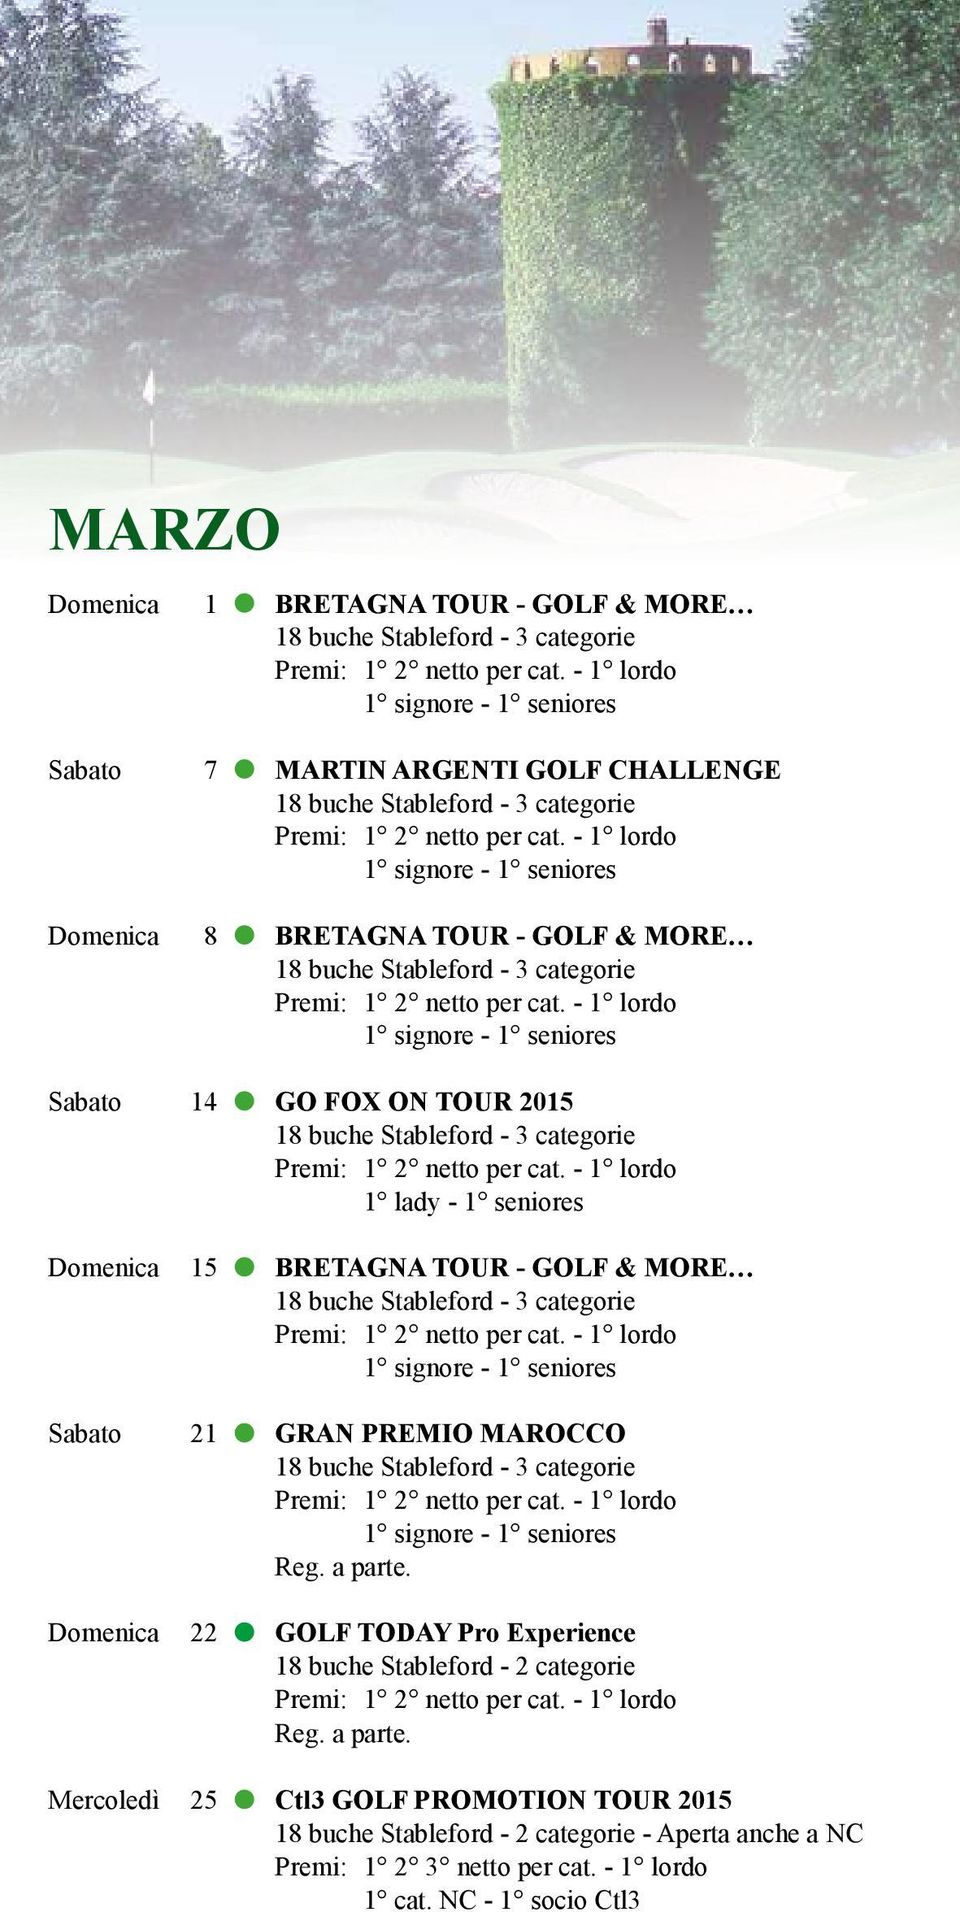 MAROCCO Domenica 22 GOLF TODAY Pro Experience 18 buche Stableford - 2 categorie Mercoledì 25 Ctl3 GOLF PROMOTION TOUR